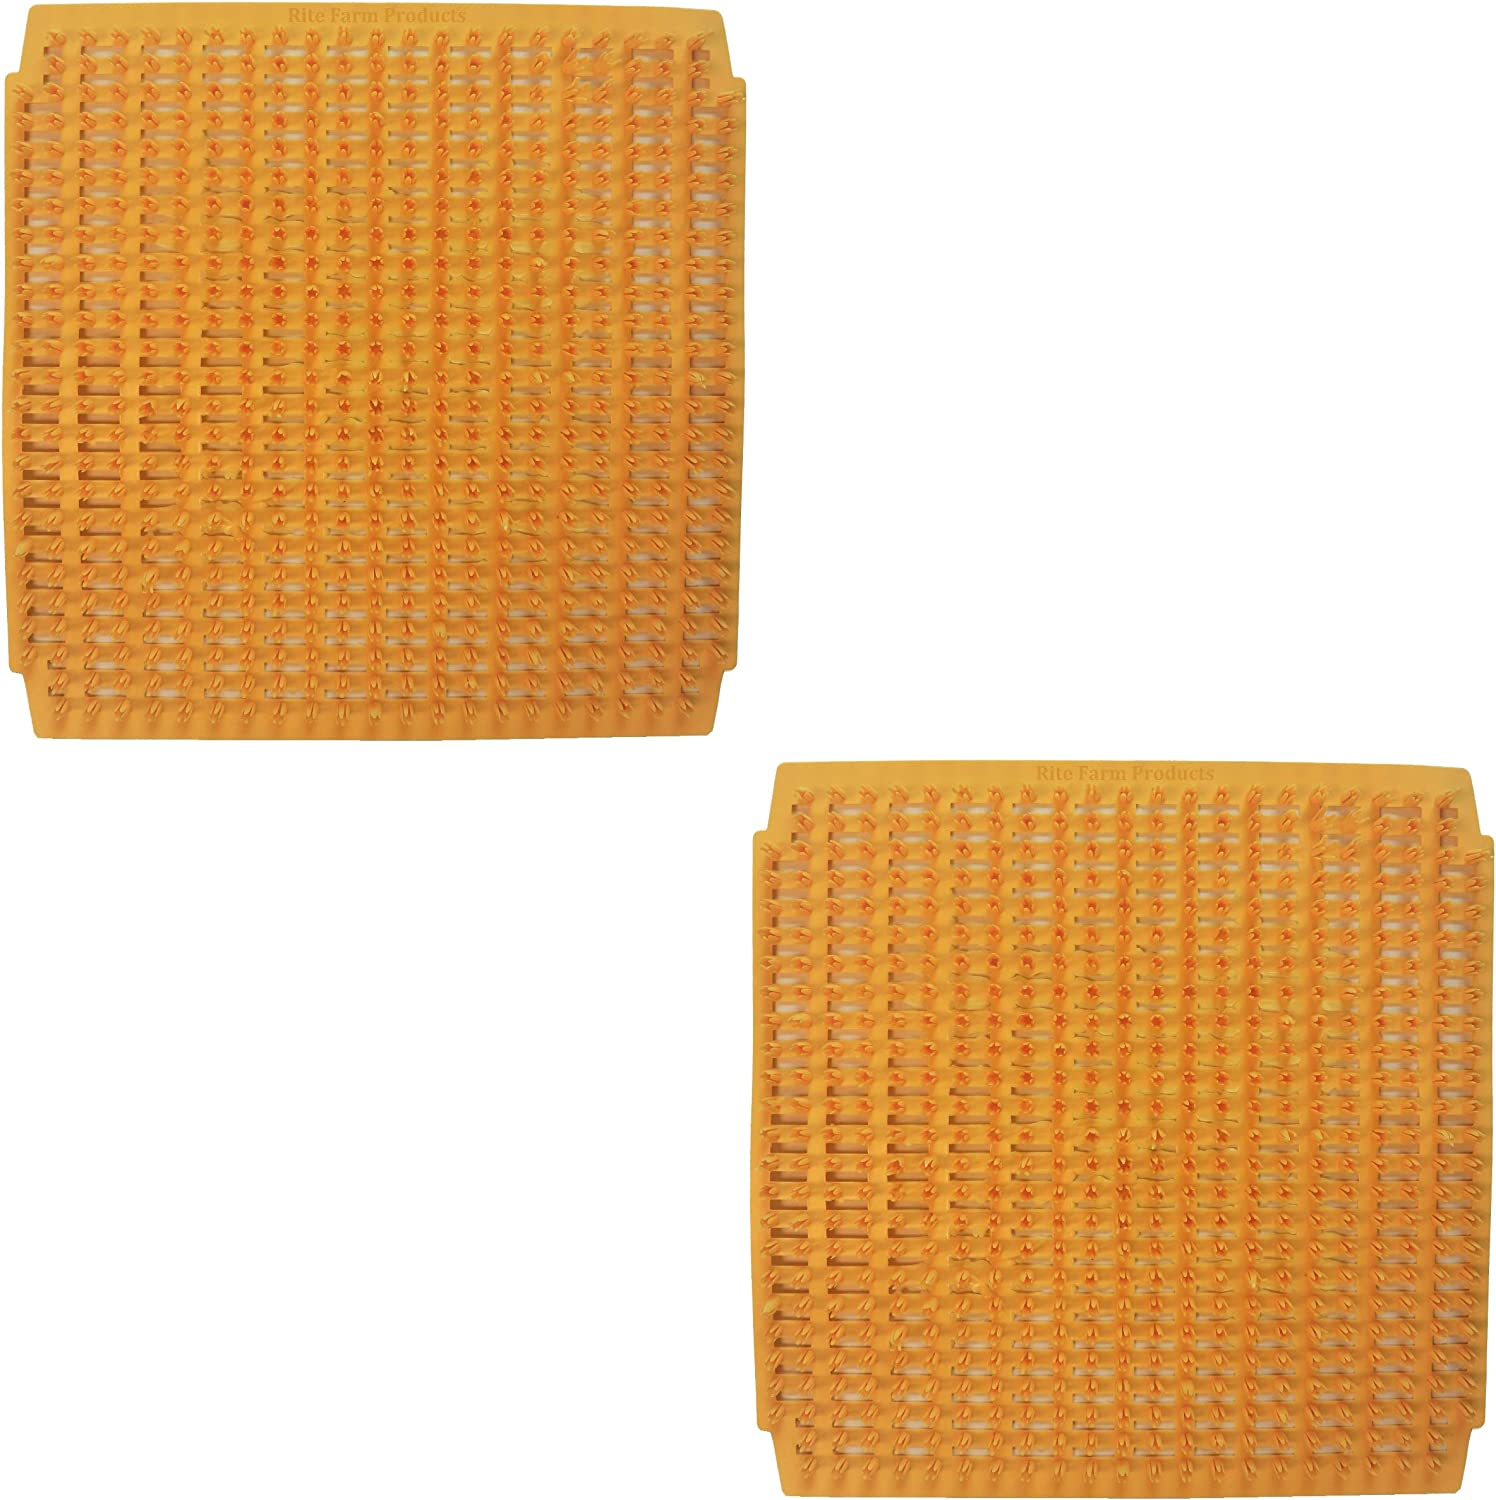 WASHABLE NESTING BOX PADS FOR CHICKEN COOP POULTRY NEST PAD PLASTIC NEST PAD 5